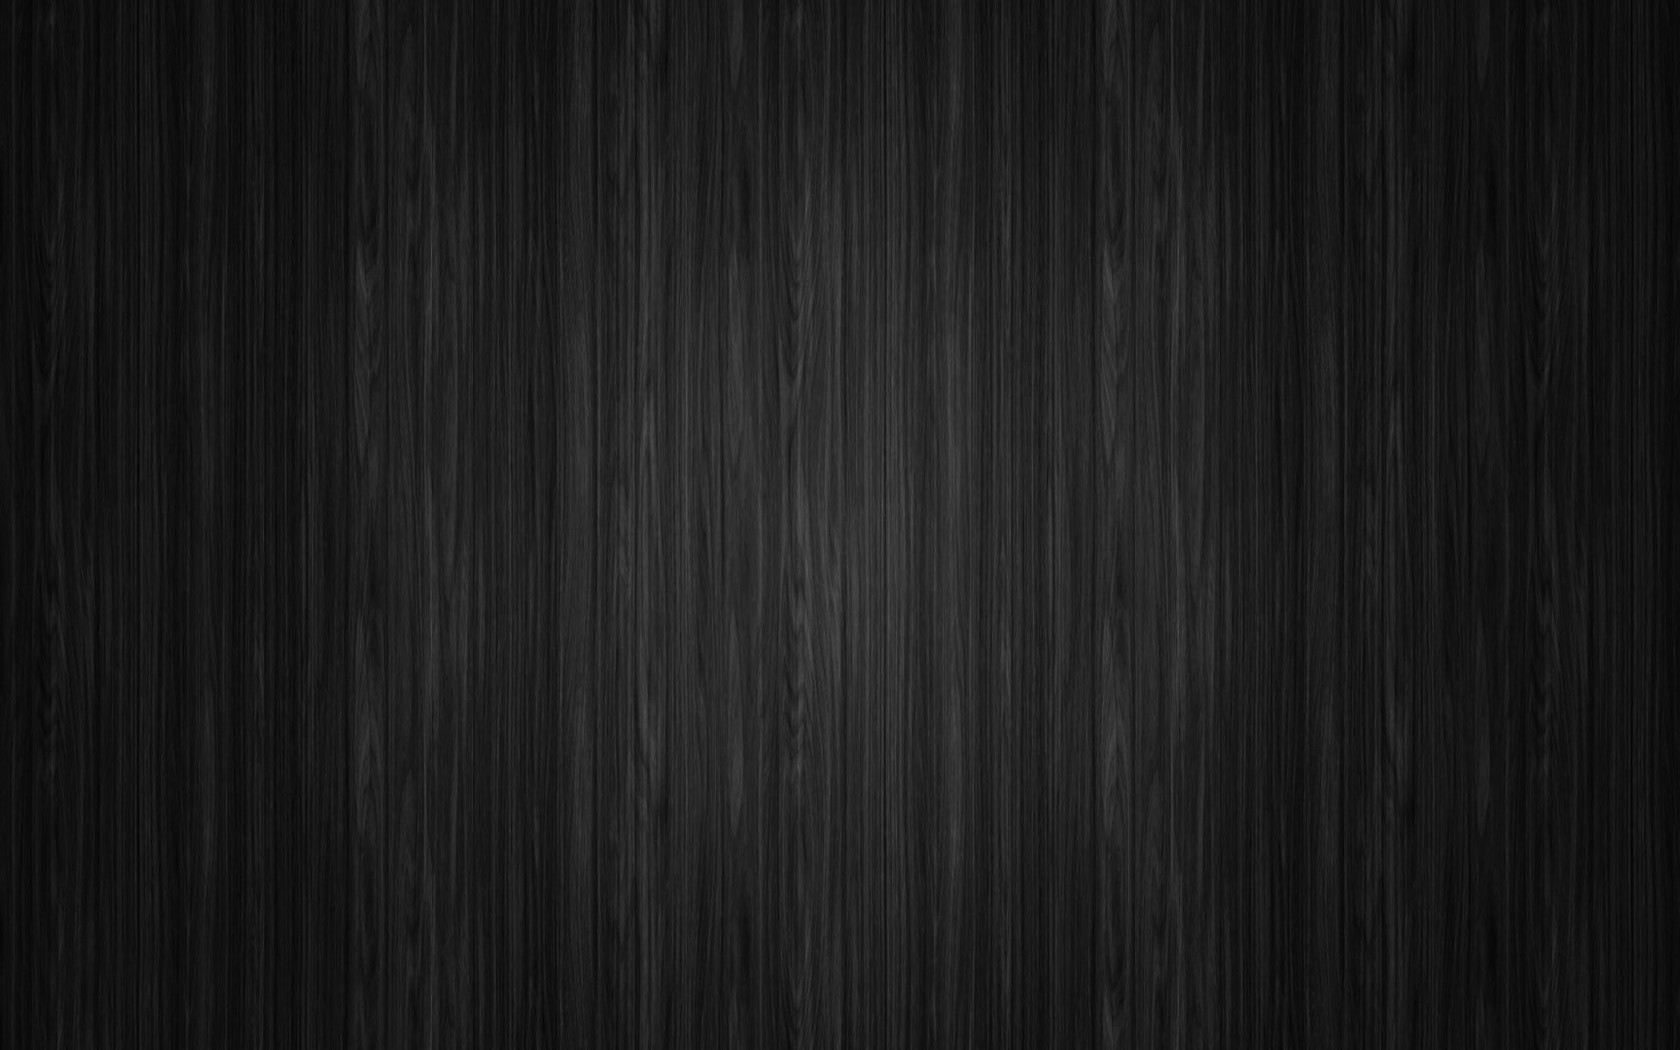 Black wood wallpaper 10727 1680x1050